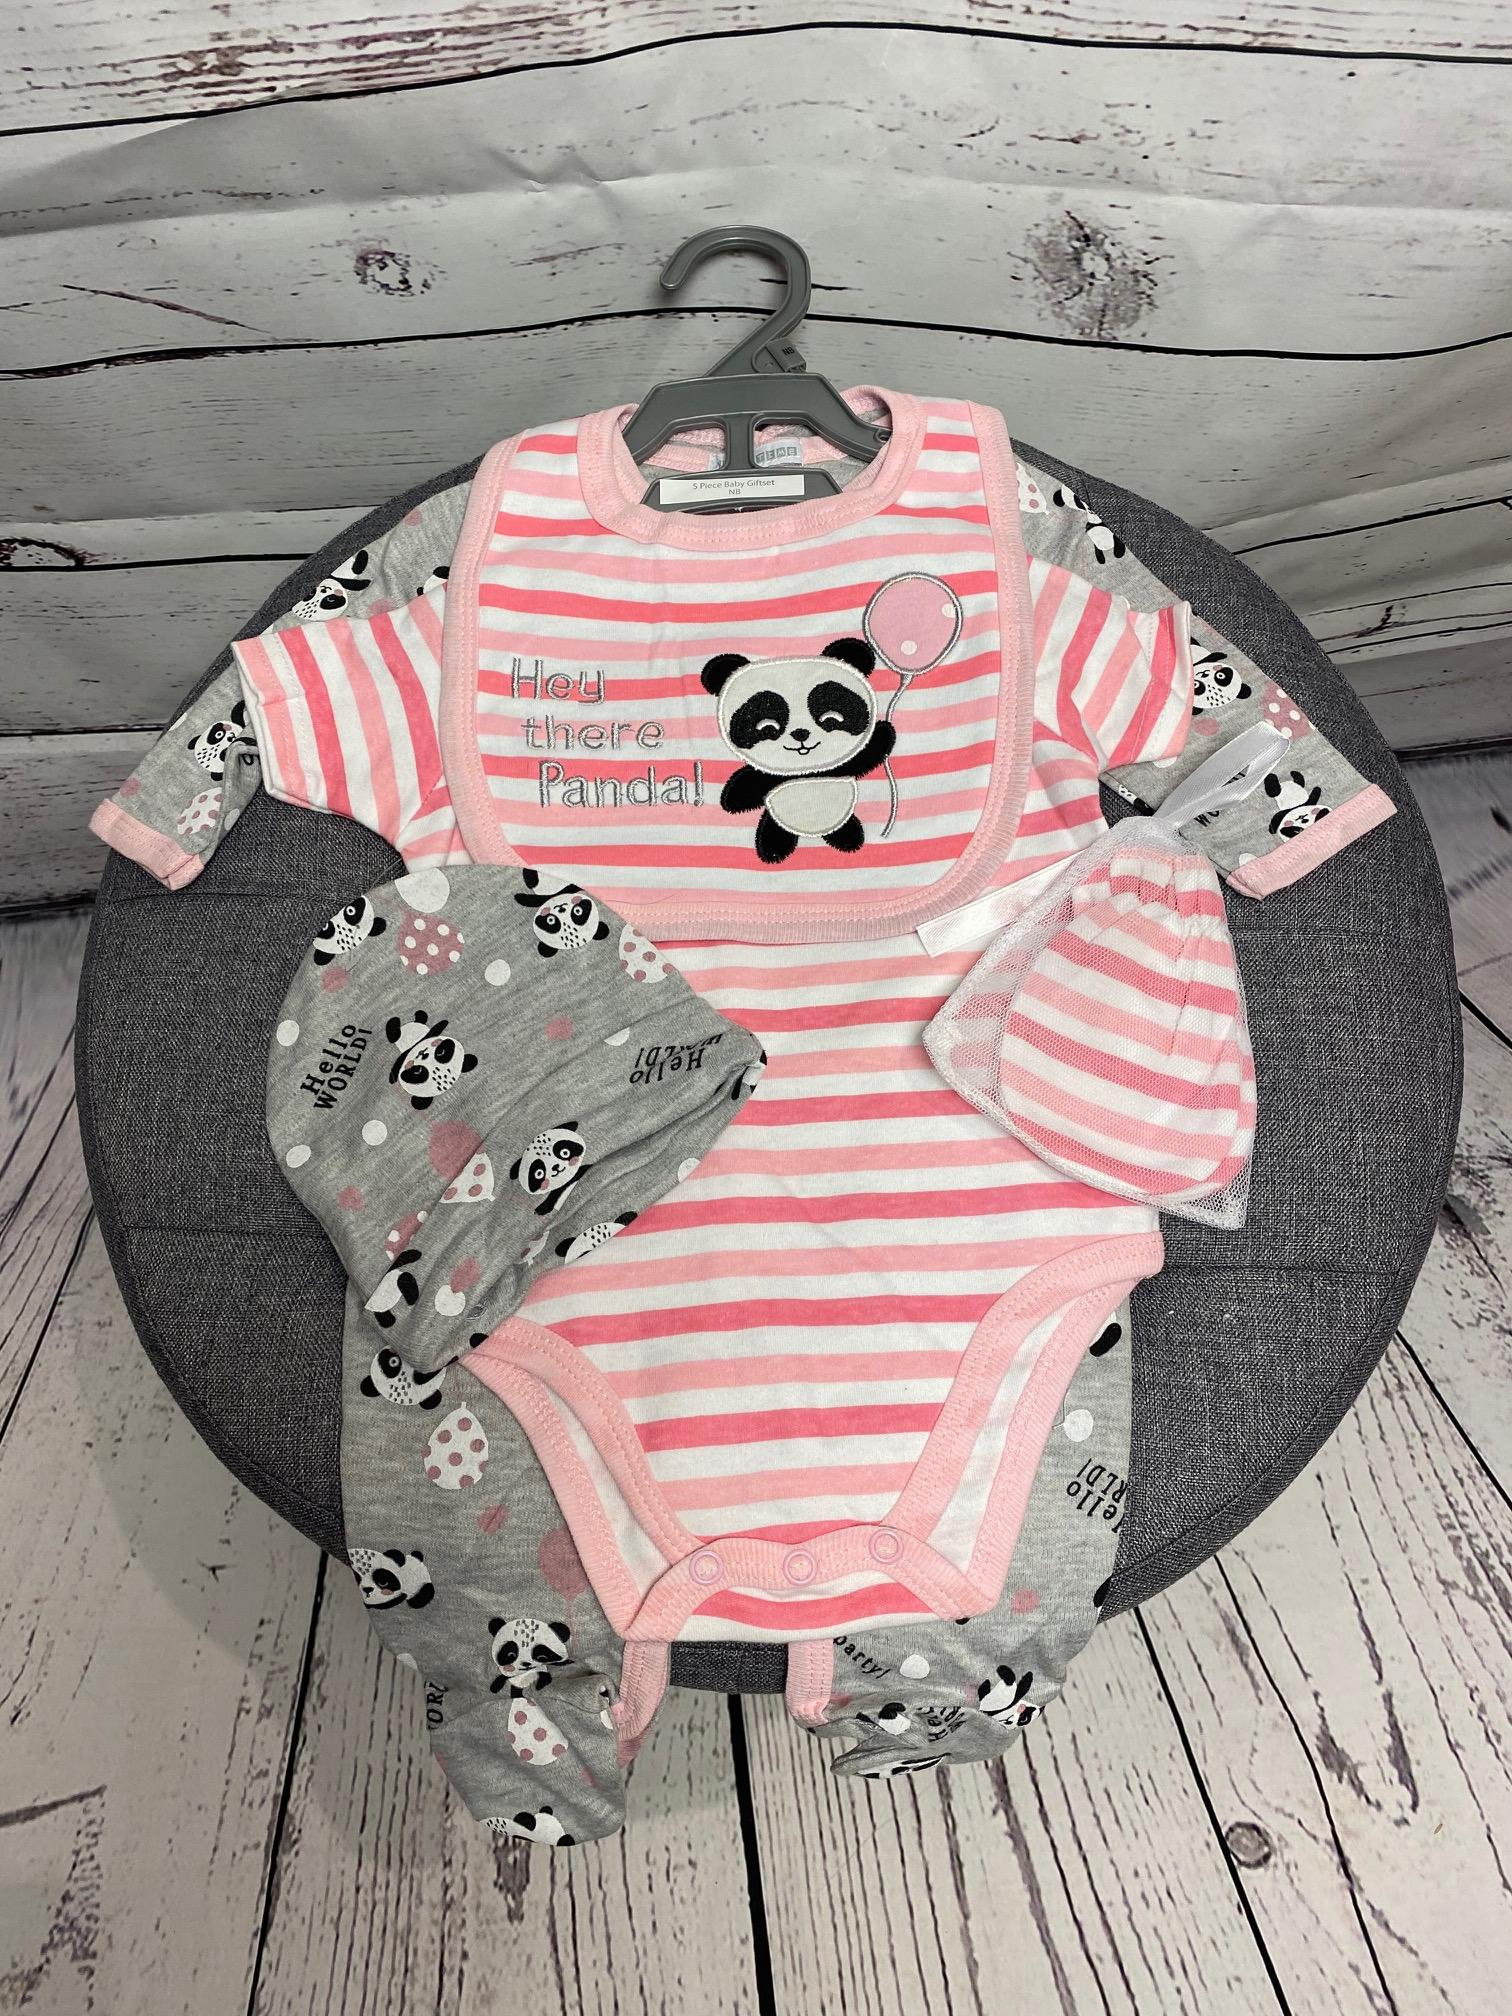 Hey There Panda - 5 Piece New Baby Gift Set (Pink)